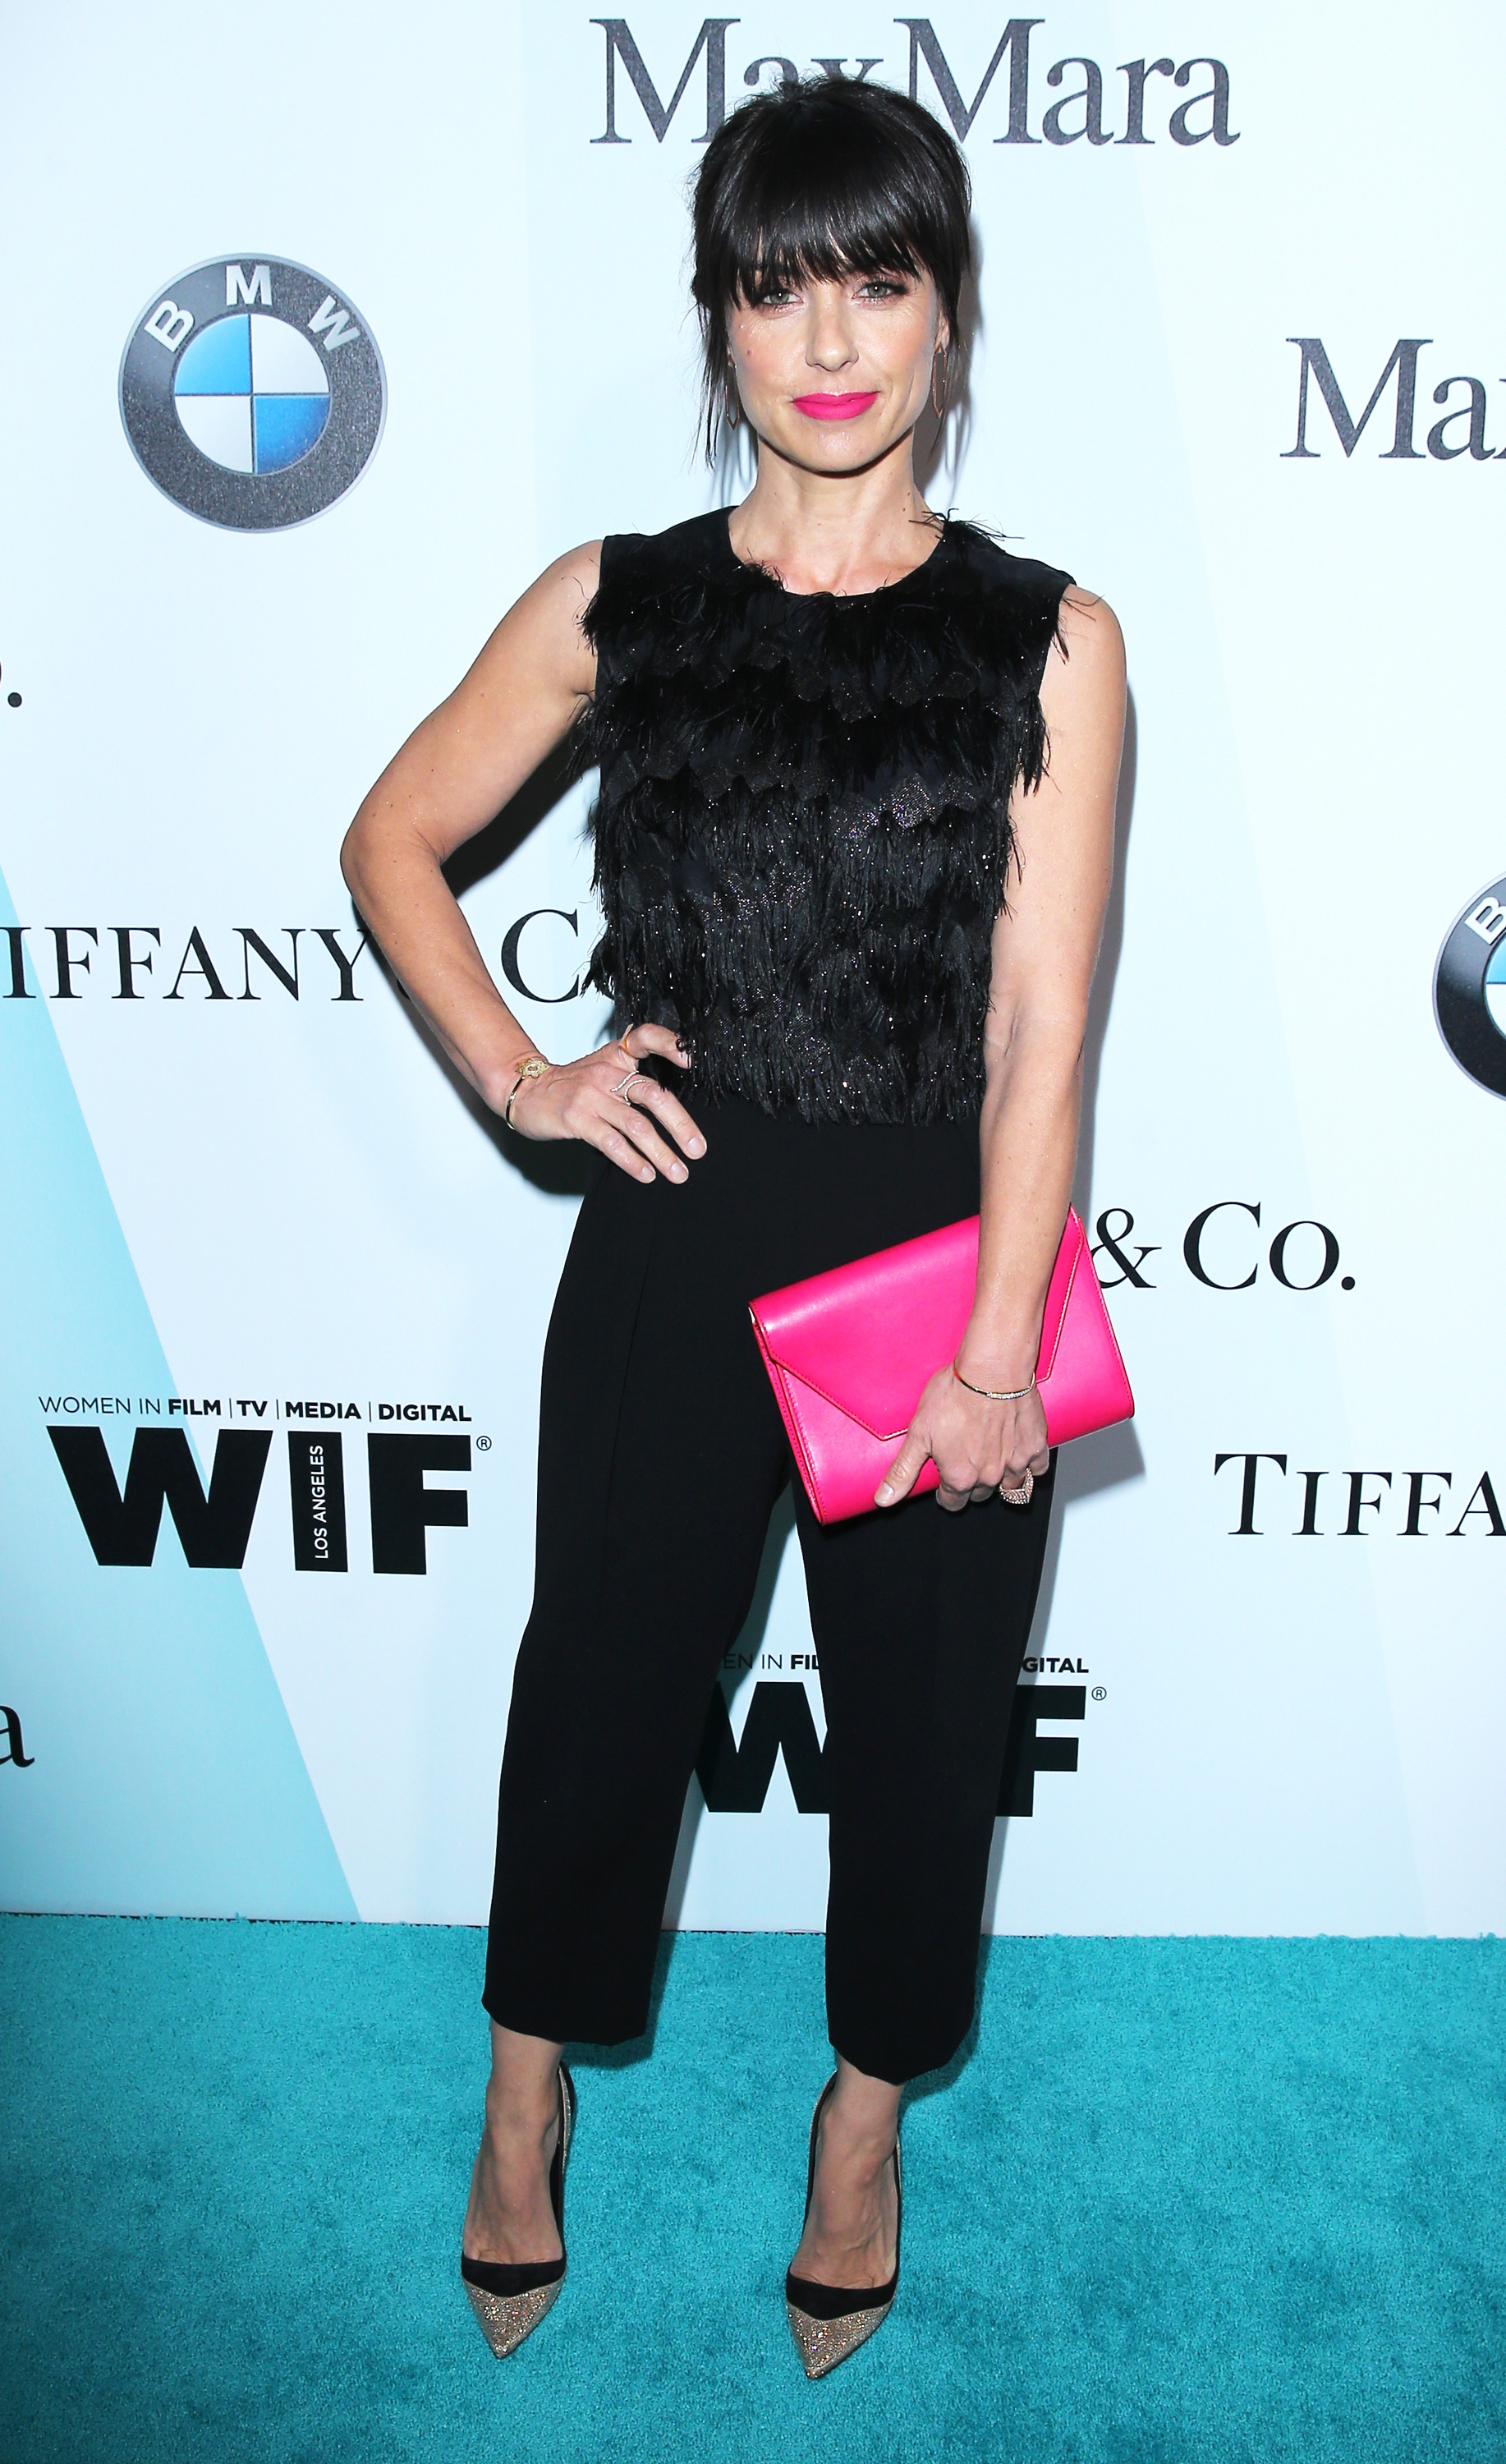 CENTURY CITY, CA - JUNE 16:  Actress Constance Zimmer attends the Women In Film 2015 Crystal + Lucy Awards Presented by Max Mara, BMW of North America, and Tiffany & Co. at the Hyatt Regency Century Plaza on June 16, 2015 in Century City, California.  (Photo by Mark Davis/Getty Images for Women in Film)